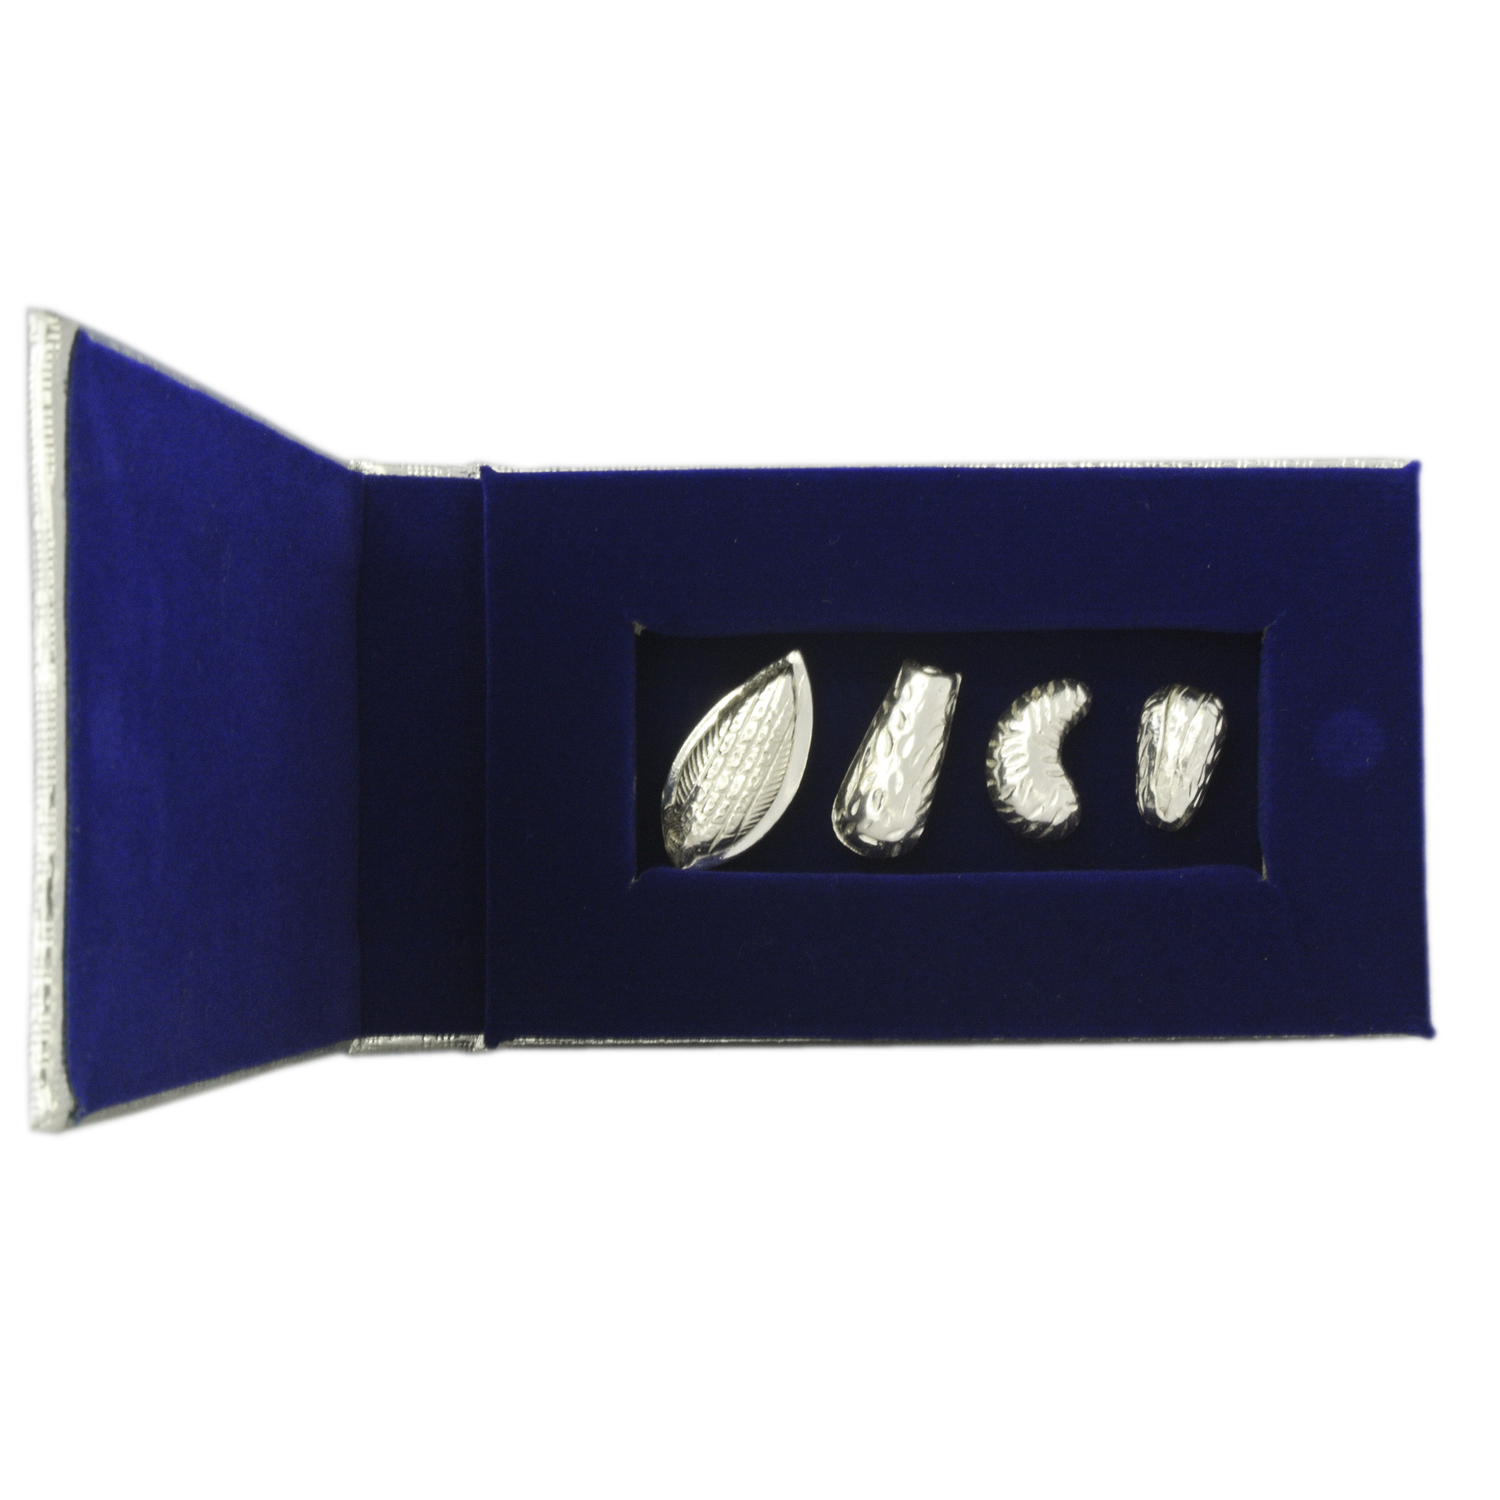 Silver Dry Fruits in a Velvet Box